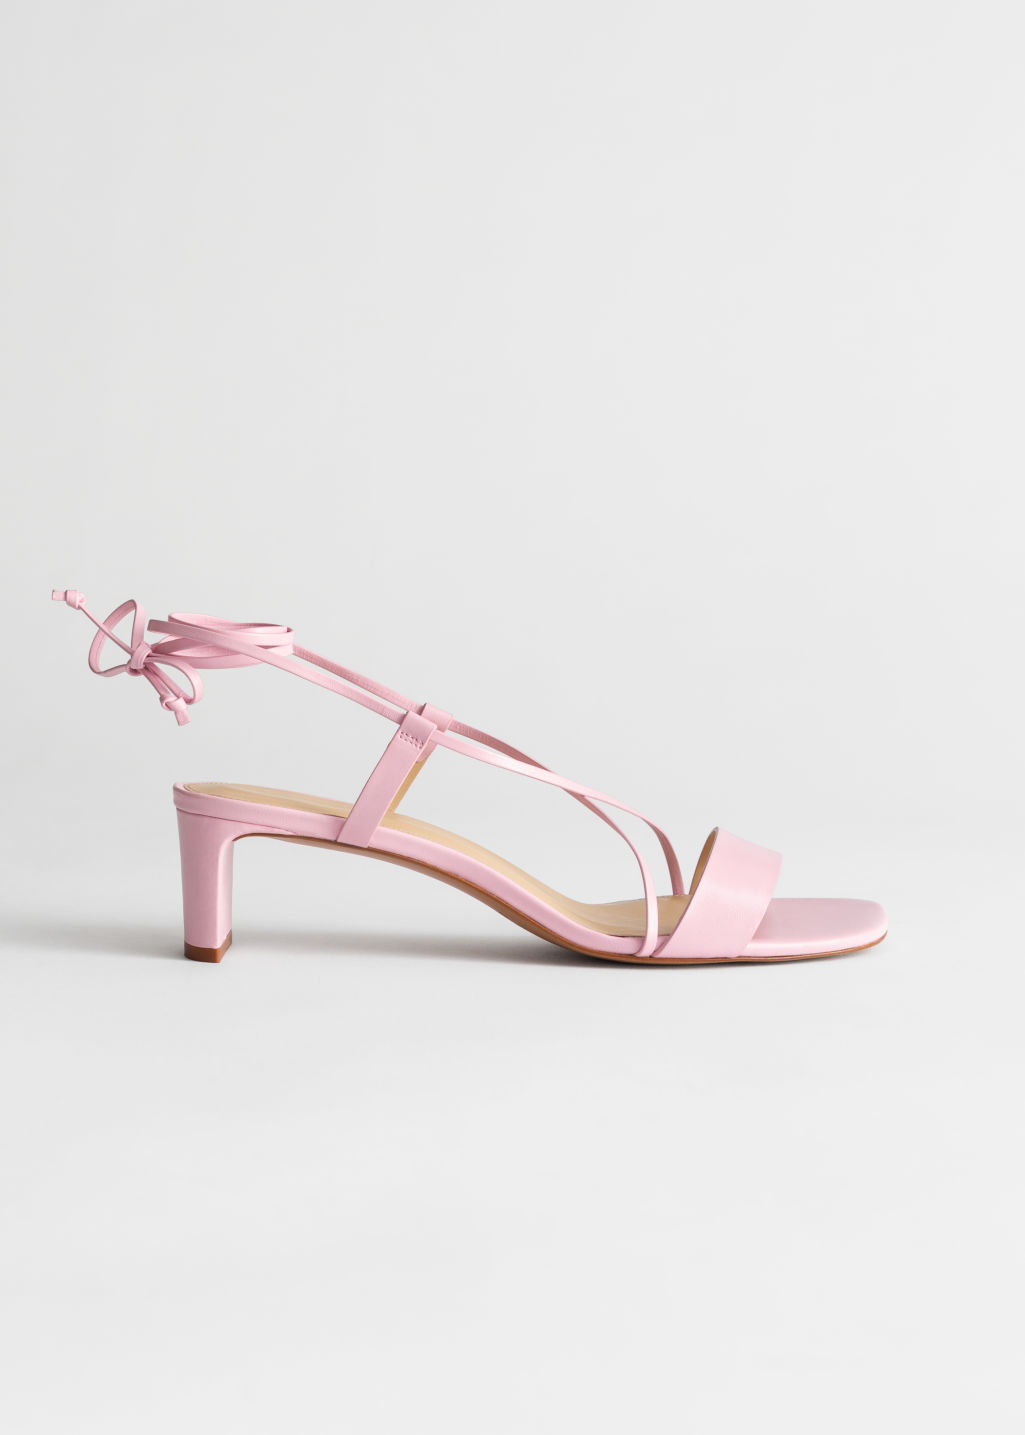 Criss Cross Lace Up Leather Sandals Pink Heeled sandals & Other Stories